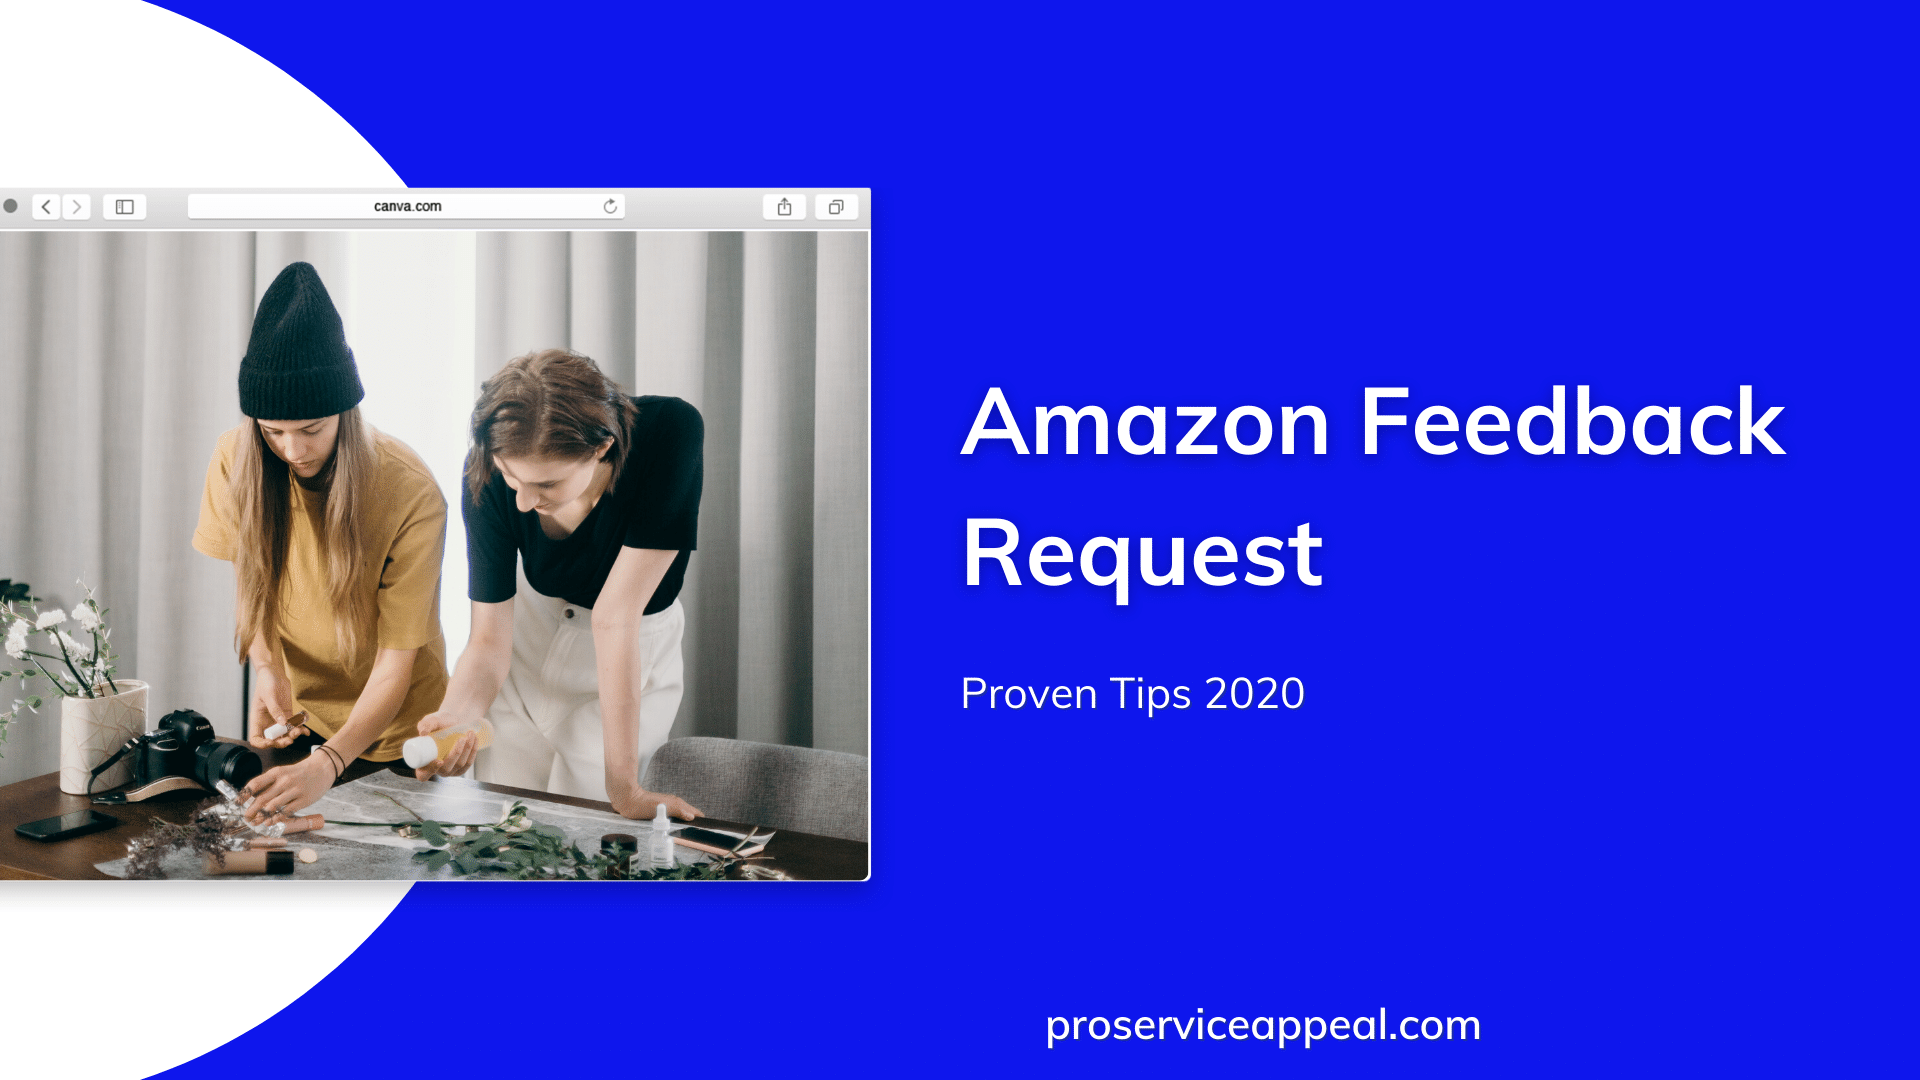 Amazon Feedback Request: Proven Tips 2020